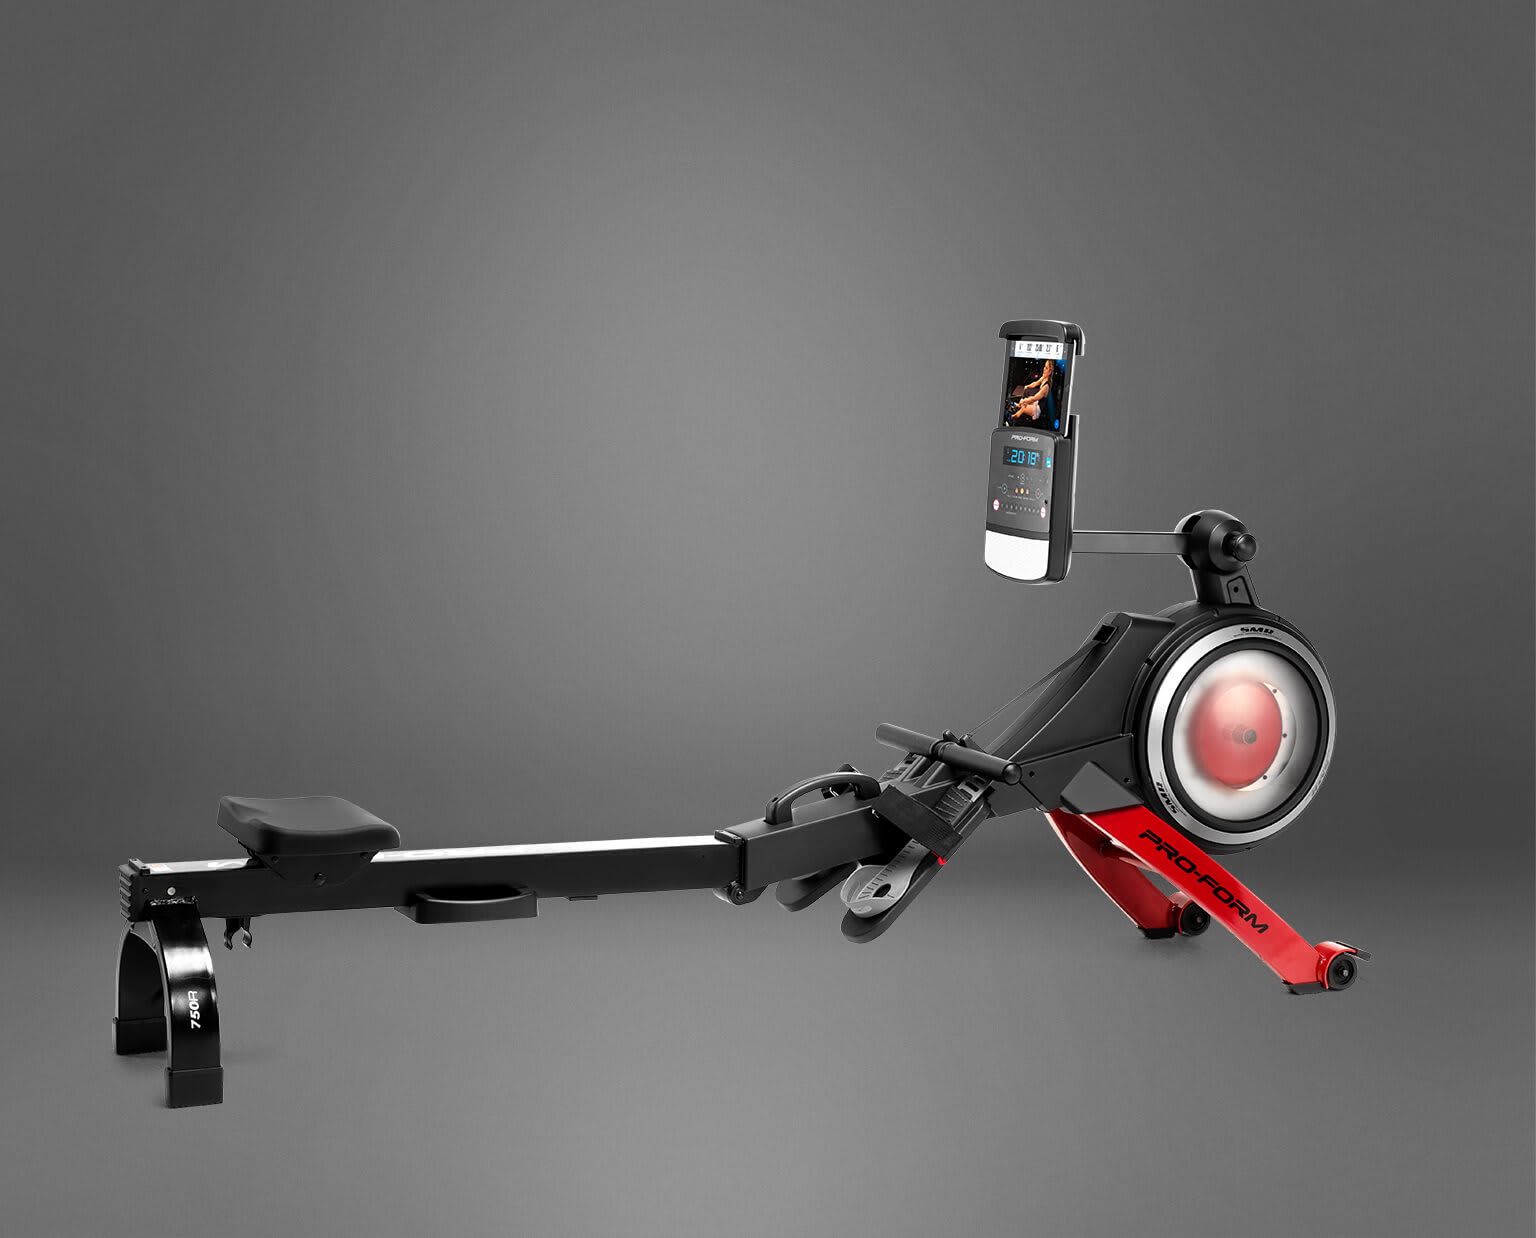 ProForm Rowing Machine Reviews - New 750R Model